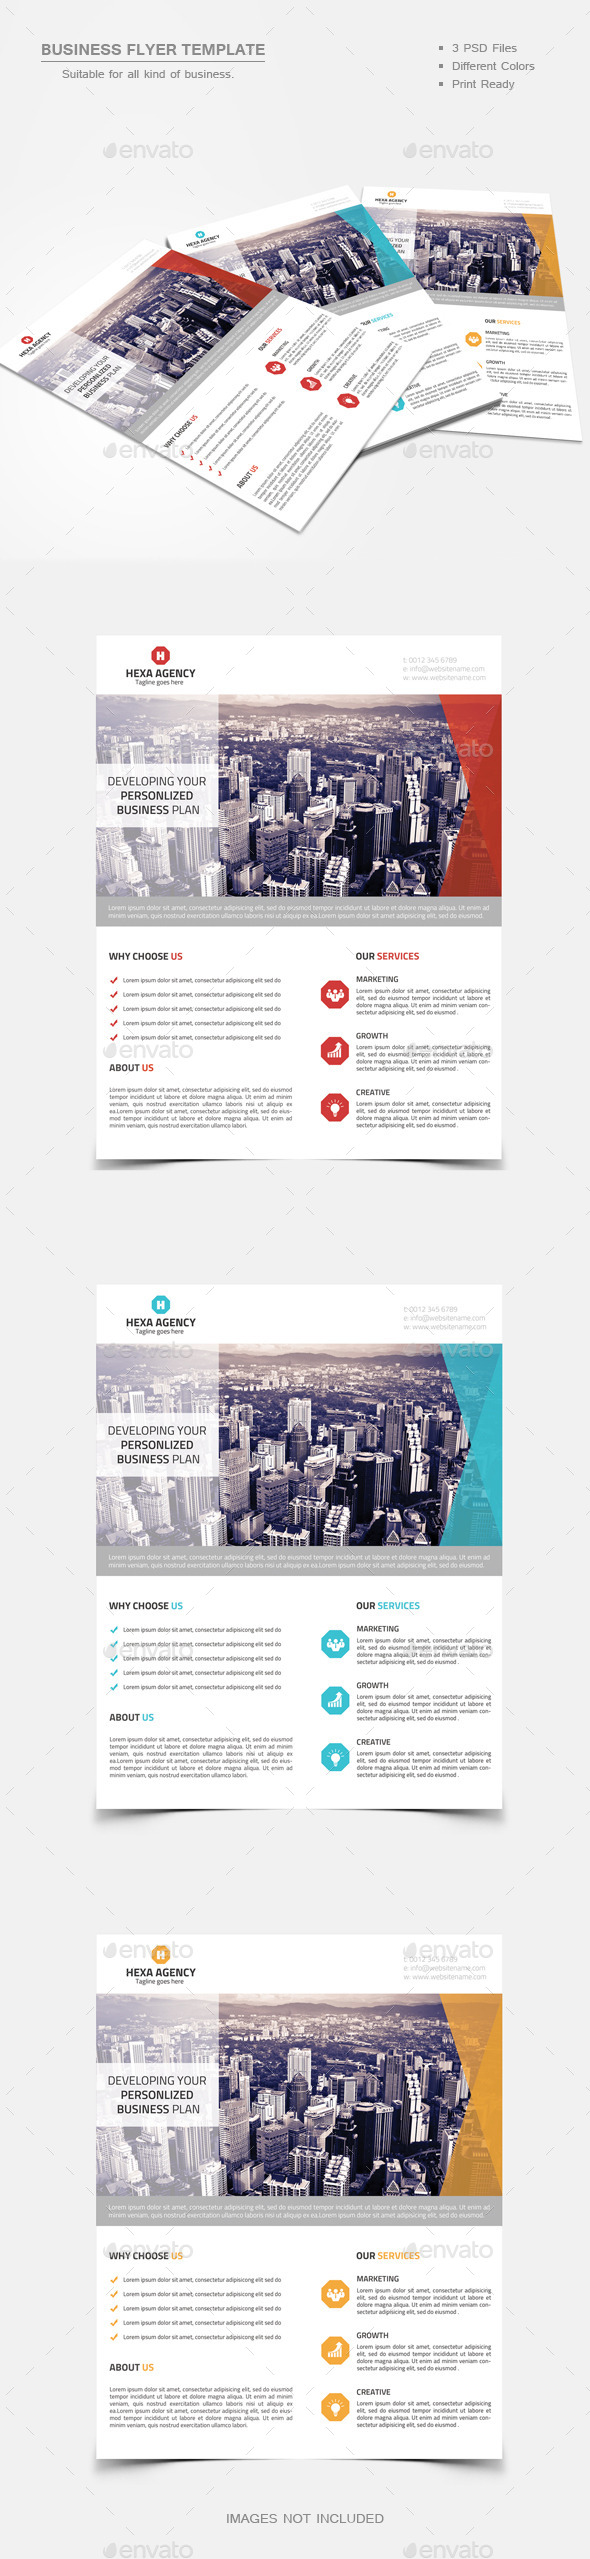 GraphicRiver Business Flyer 02 9491246